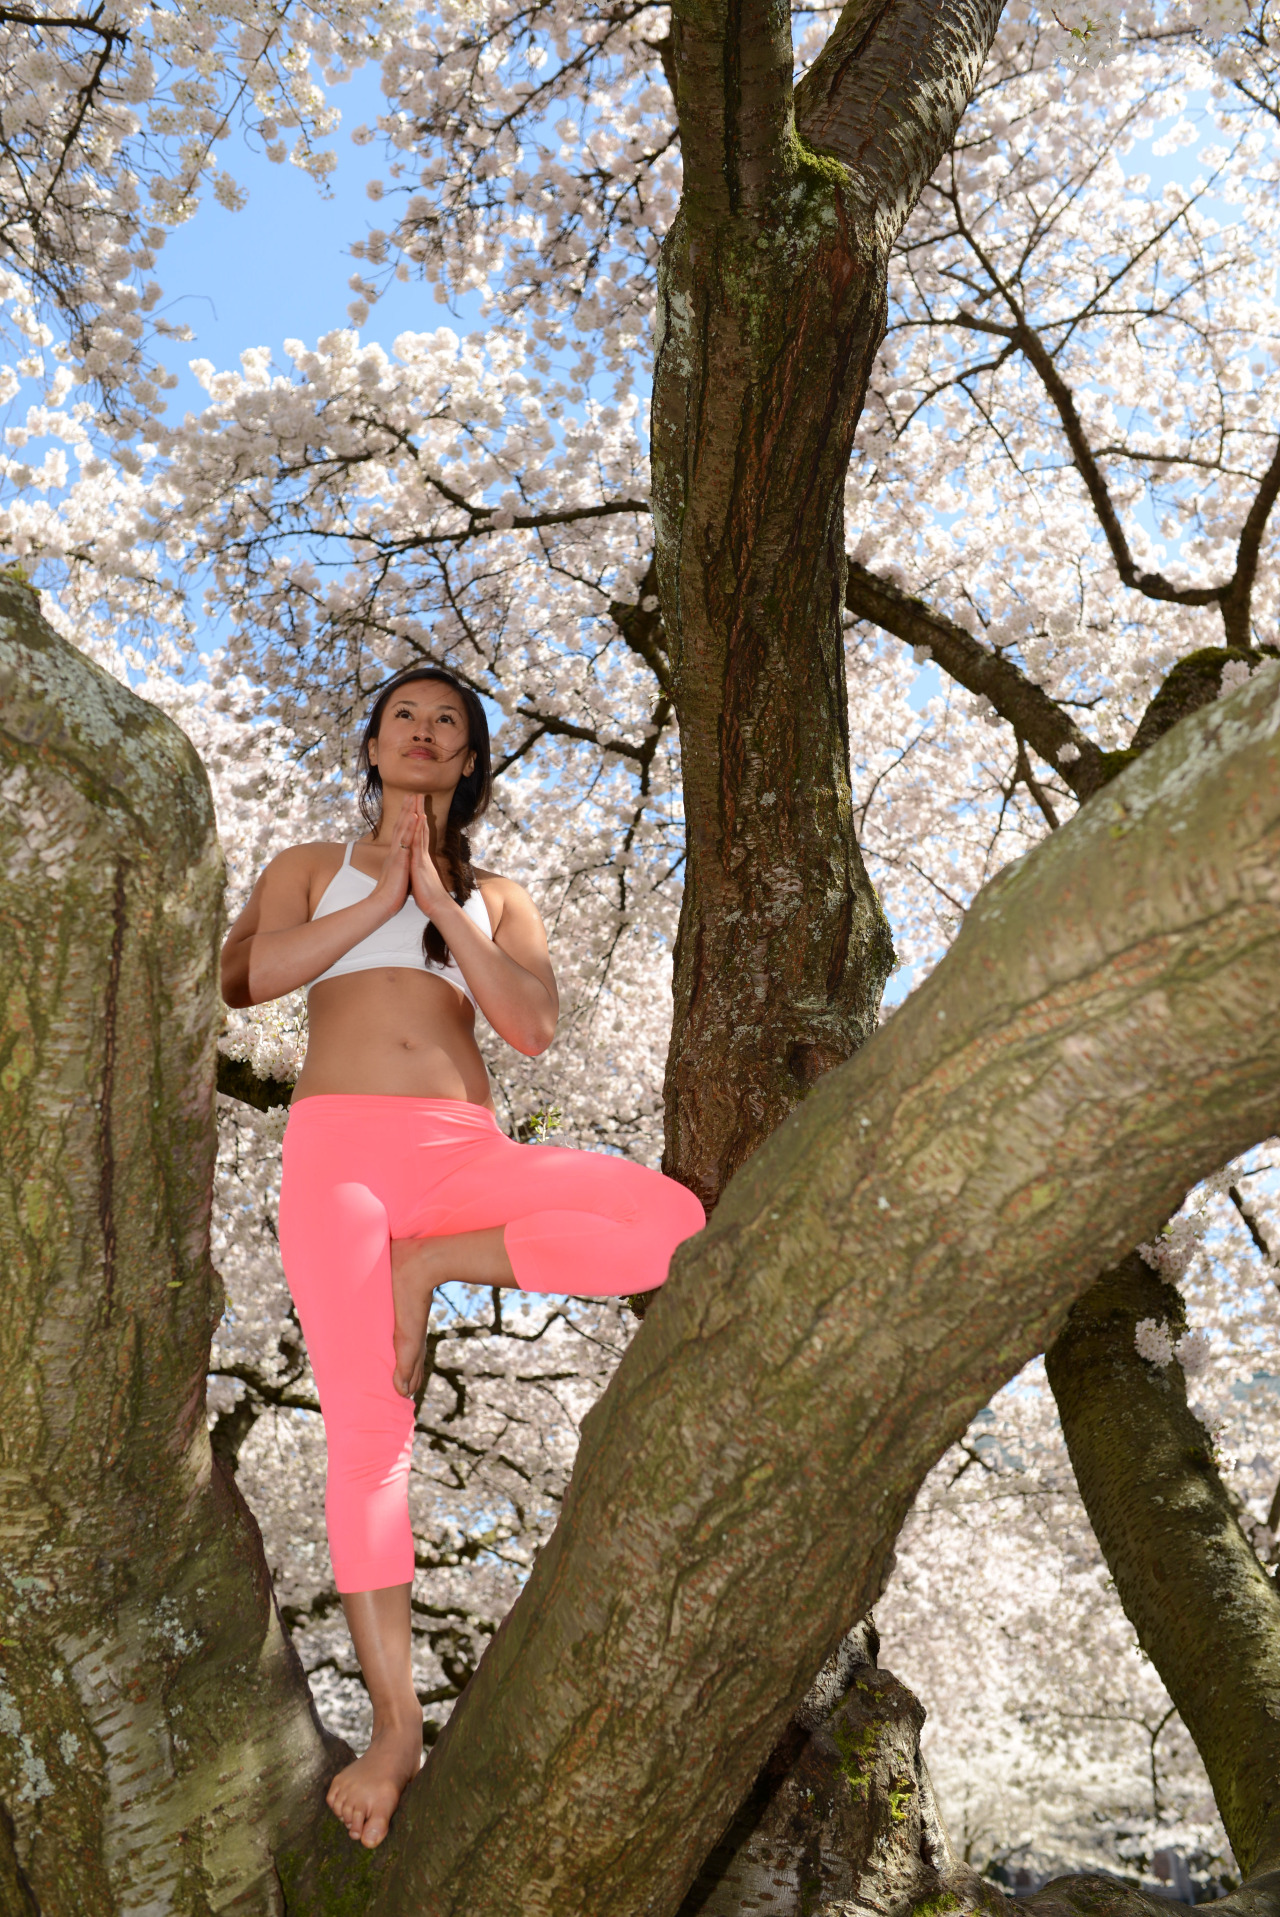 Vrschikasana | Tree Pose  Cherry Blossoms | Universtiy of Washington | Seattle | Washington | USA